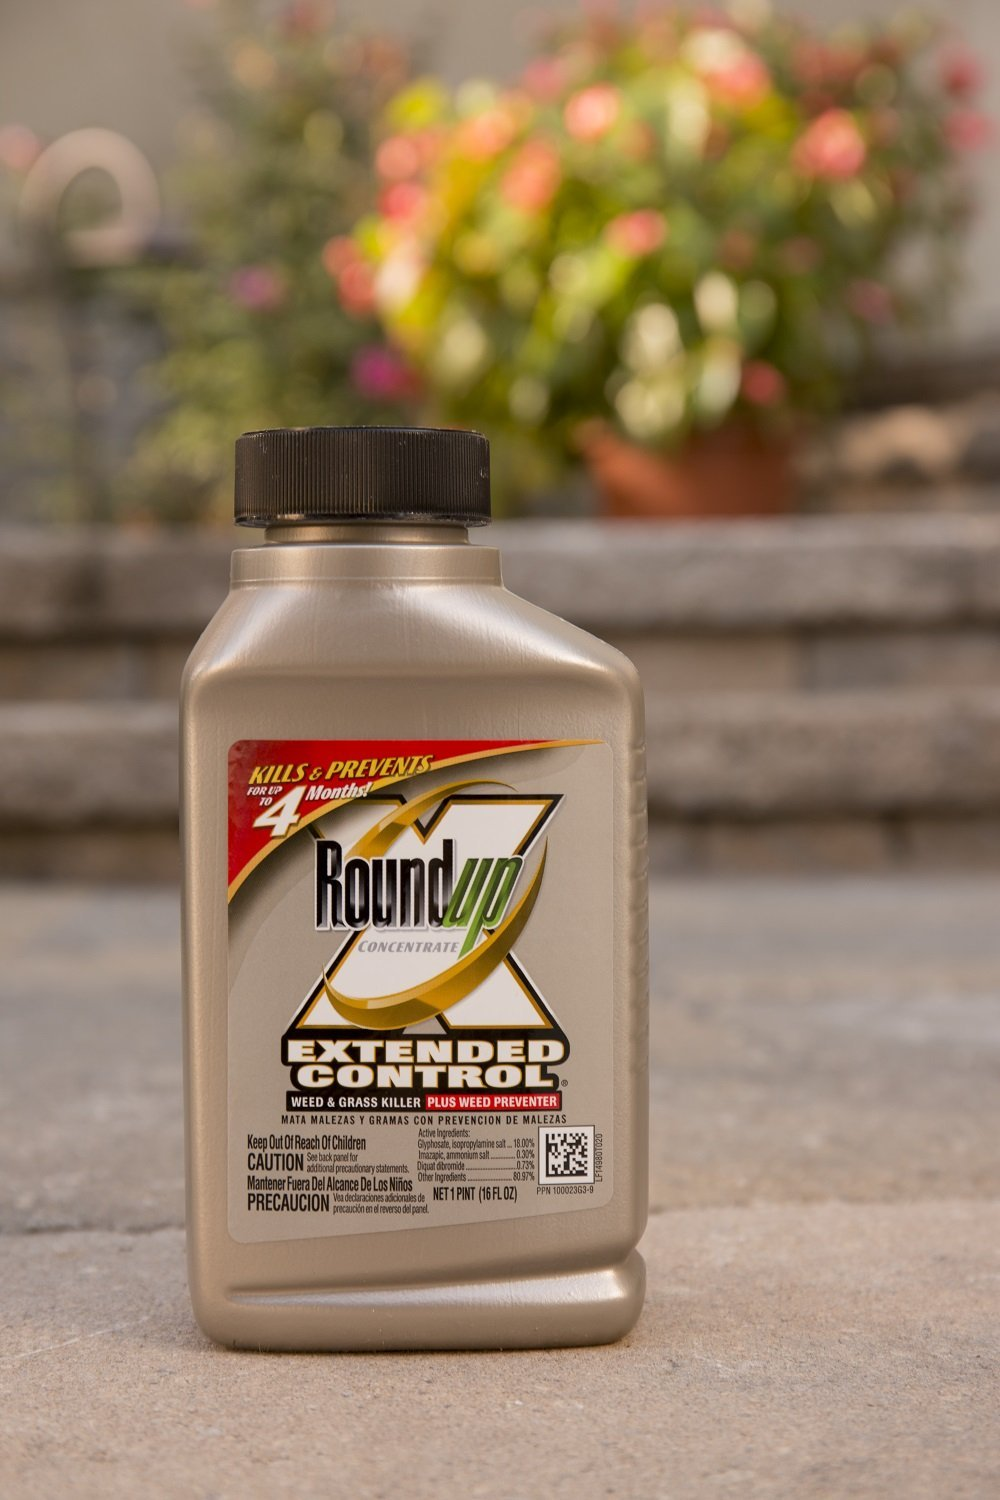 Amazon.com : Roundup Extended Control Weed and Grass Killer Plus ...